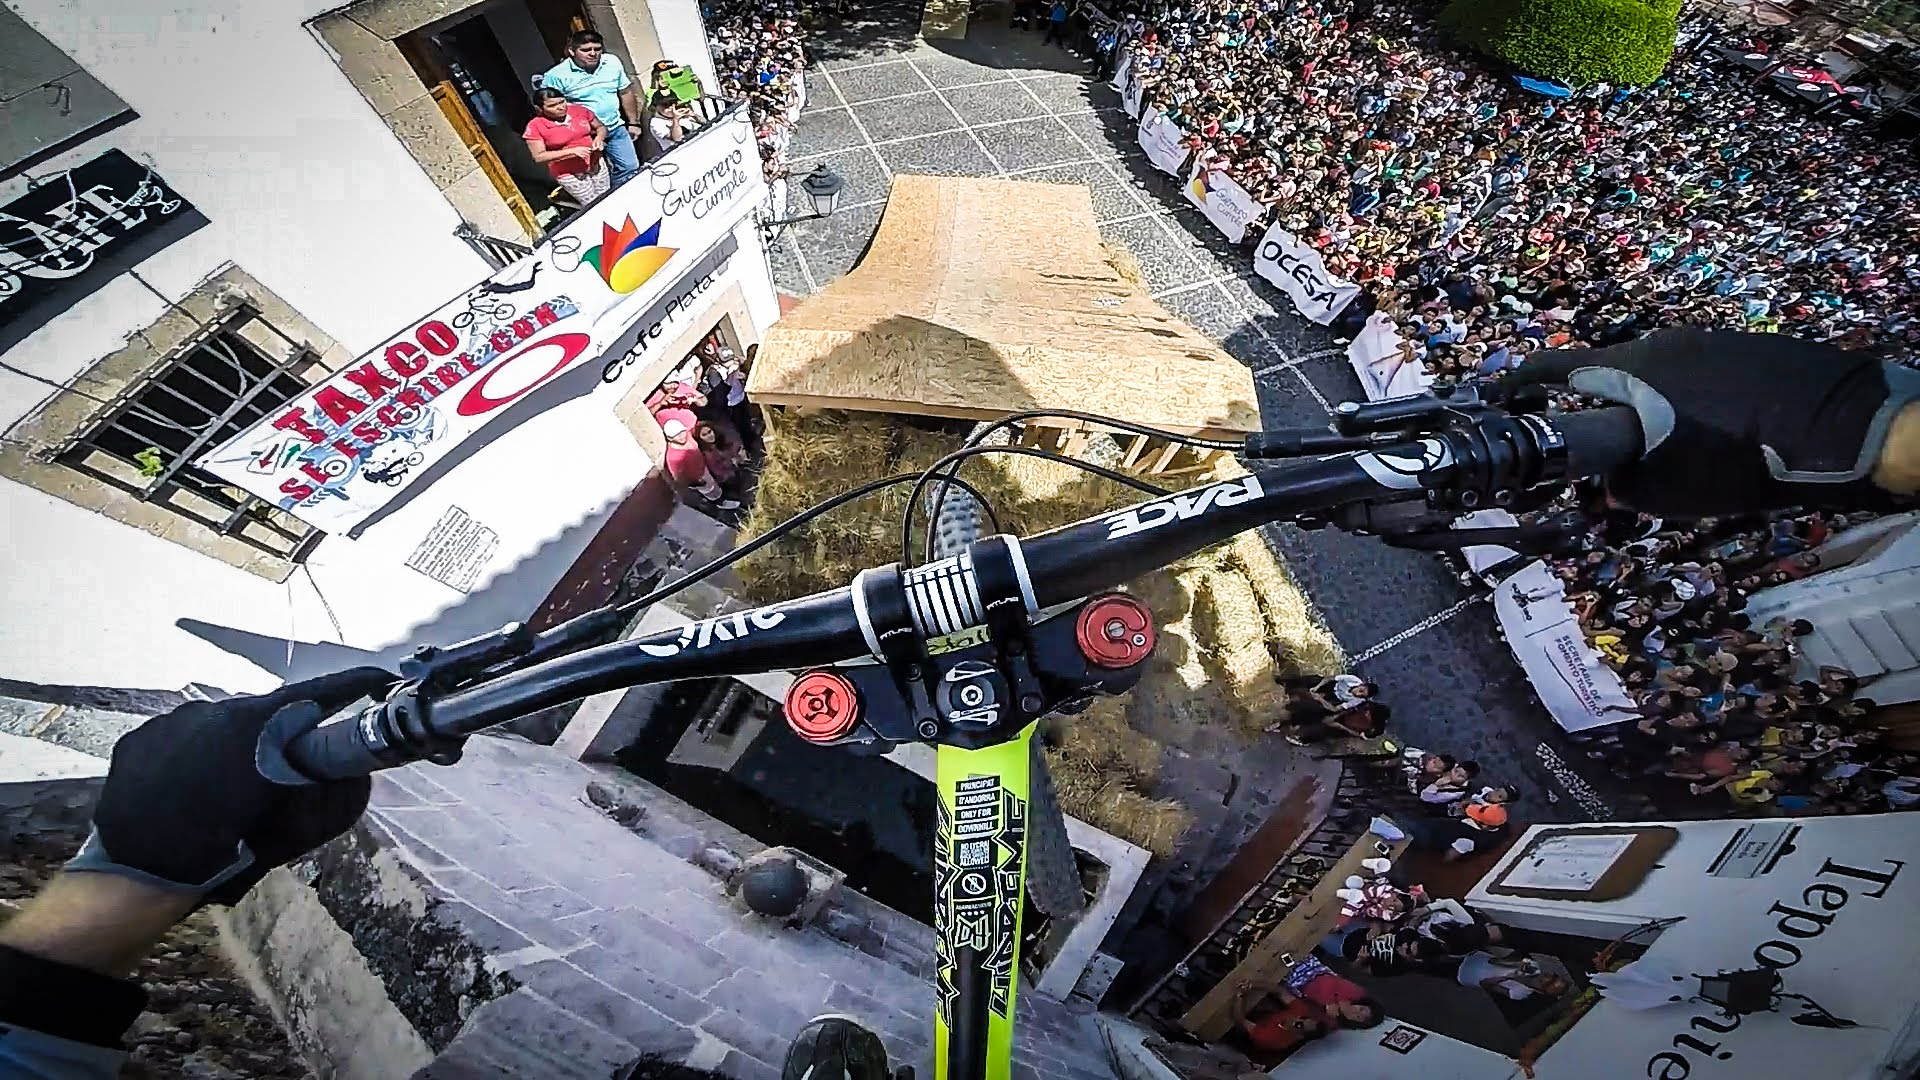 Crazy awesome downhill